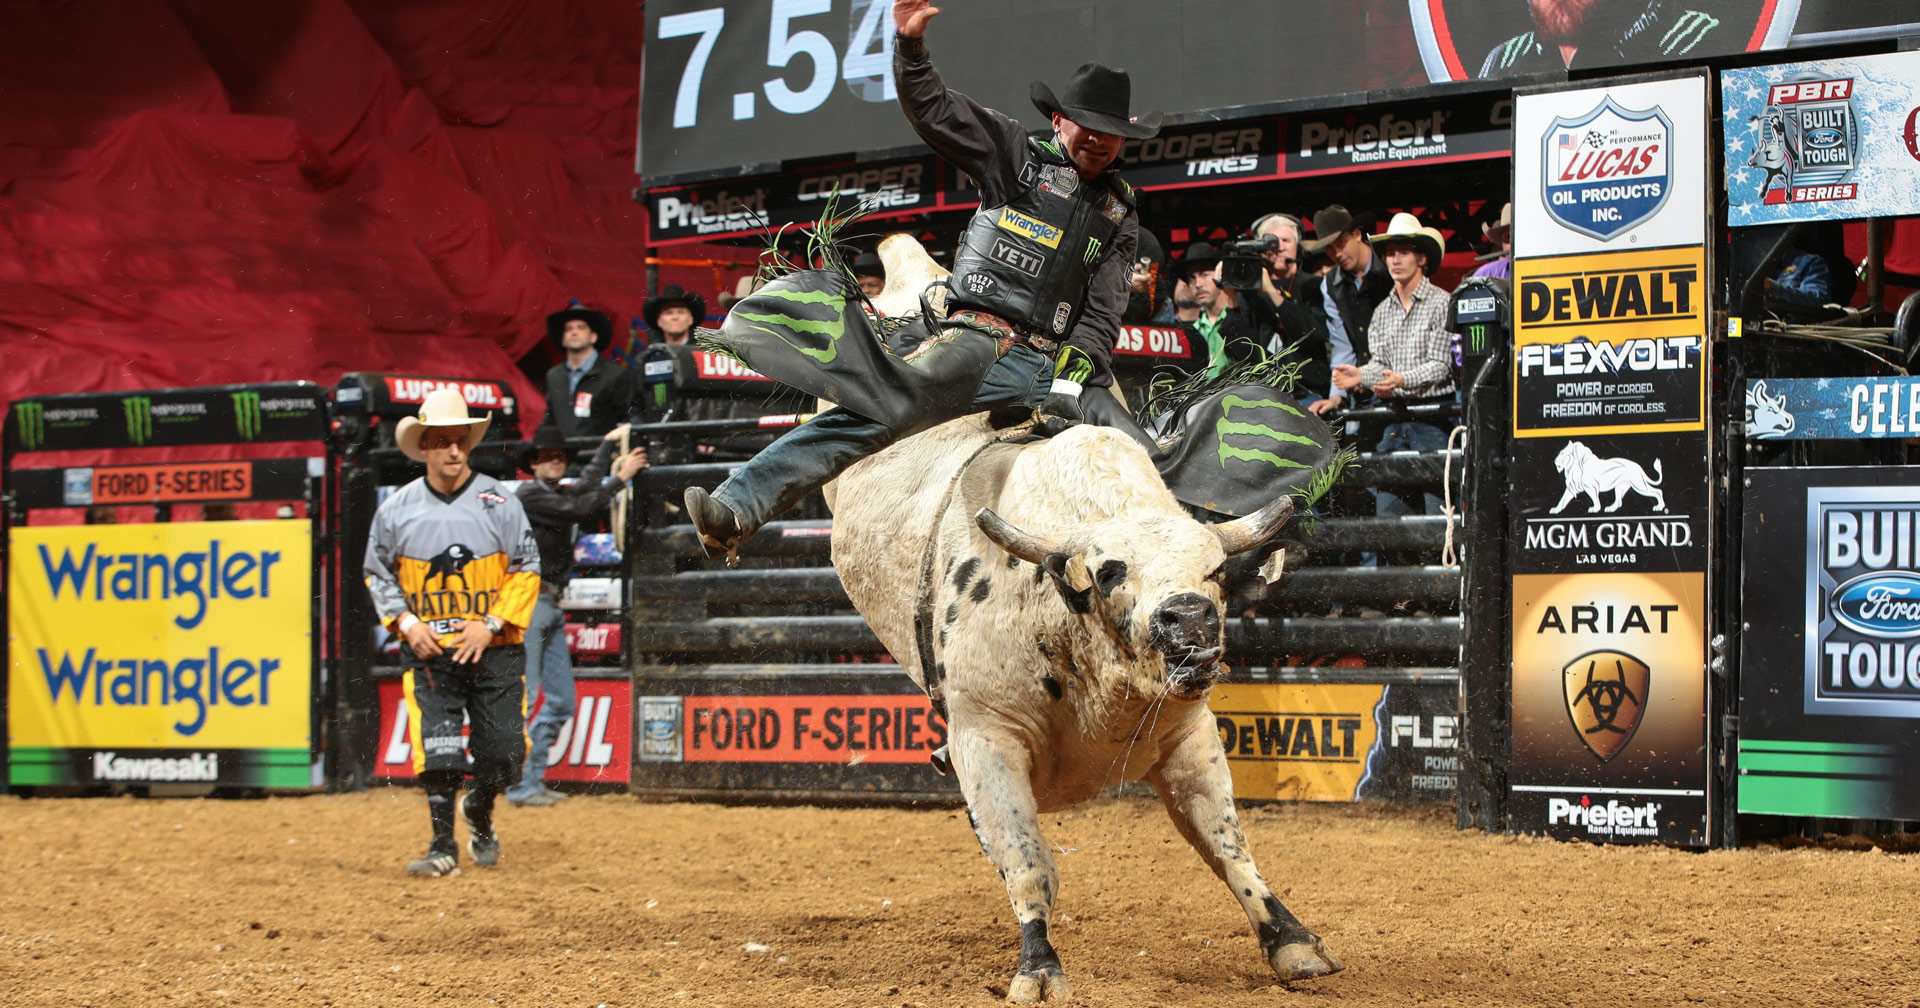 Chase Outlaw – Professional Bull Rider